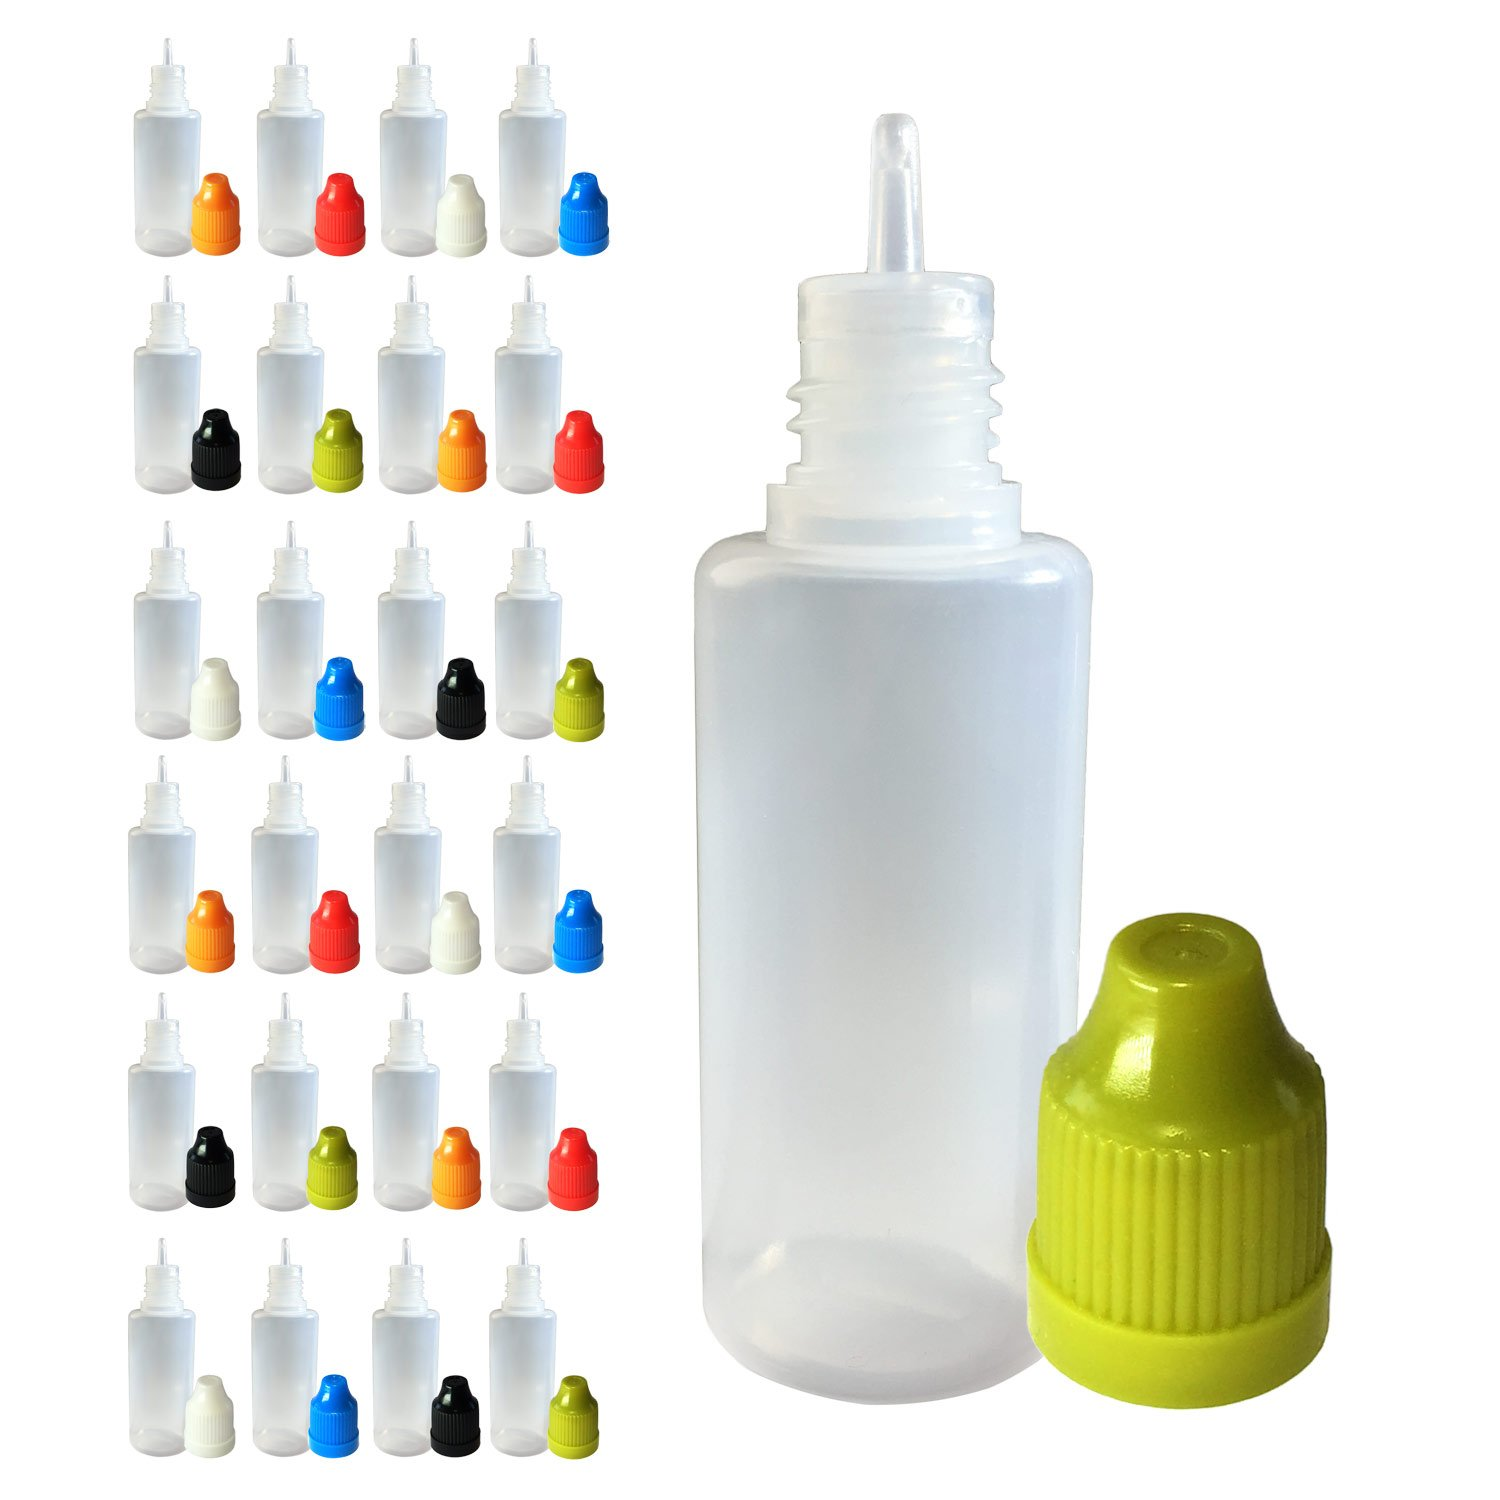 510 Central 20mL LDPE Plastic Thin Tip Dropper Bottles 25 Pack Multi Color Caps